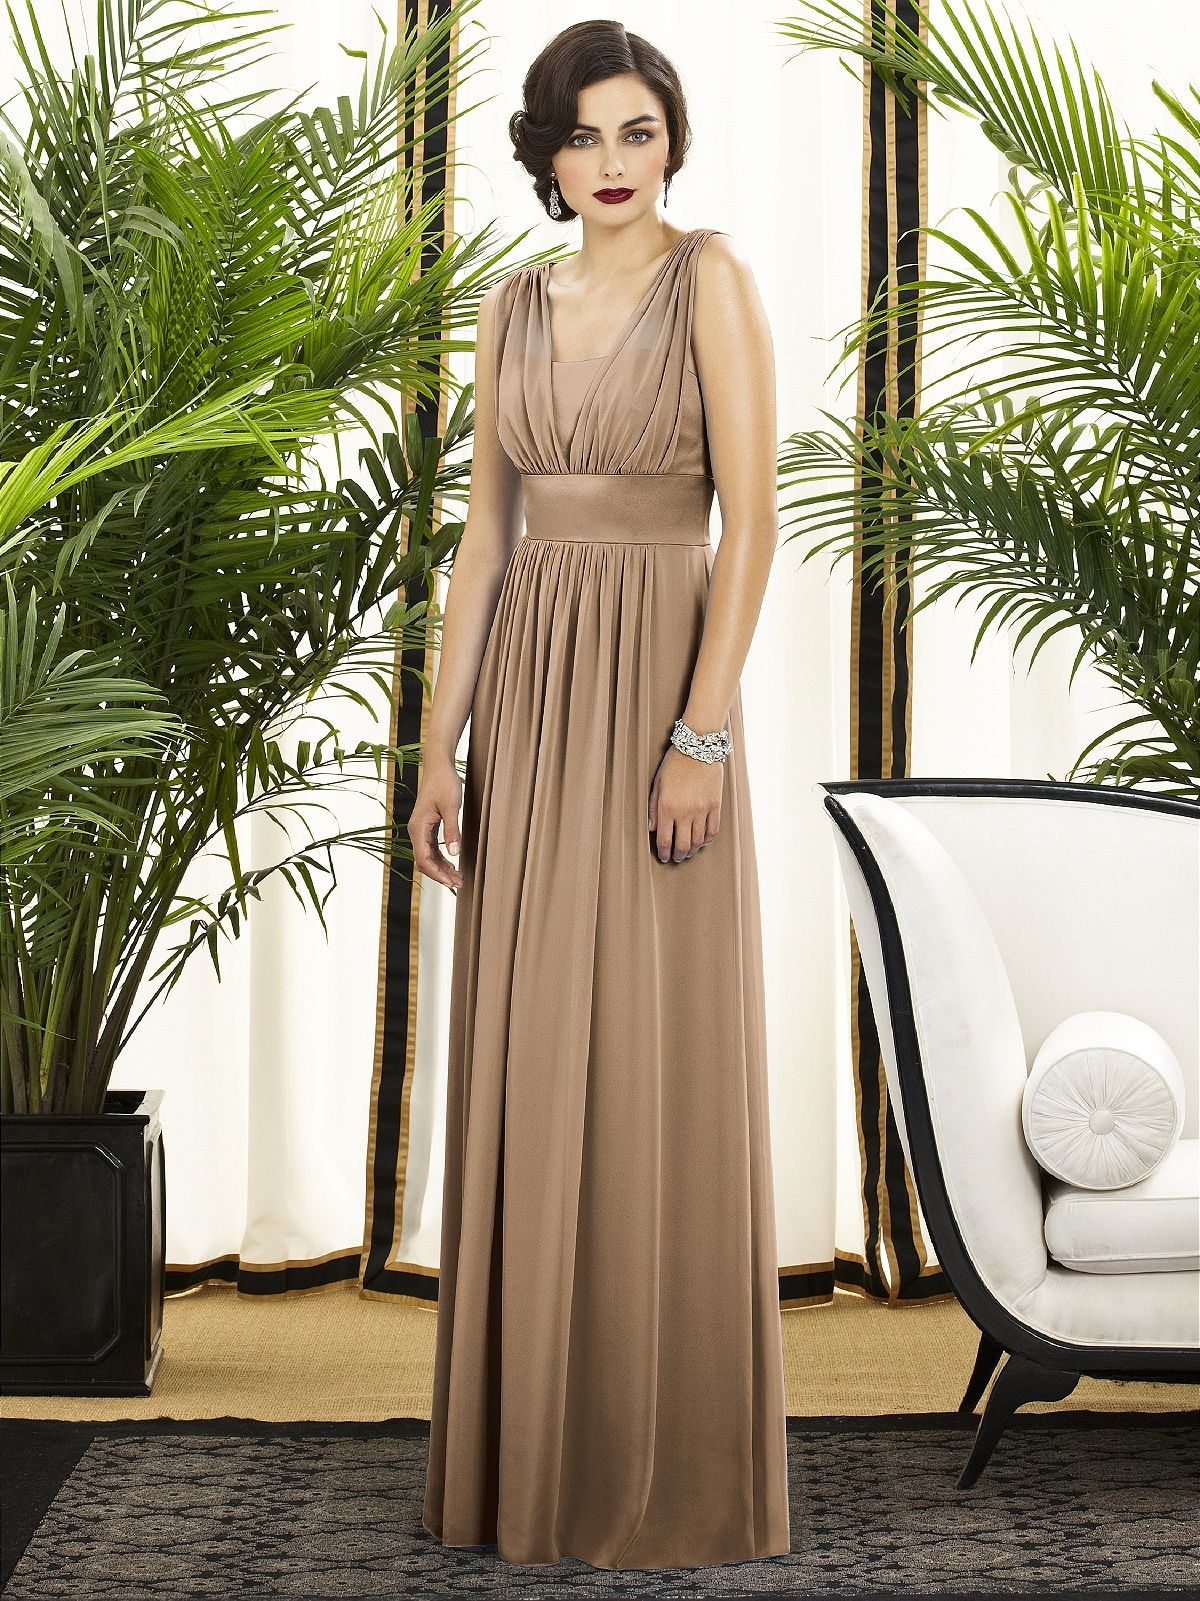 459b04b18220 Dessy Bridesmaid Dresses - Style 2890 in Cappuccino | Vintage/Rustic ...